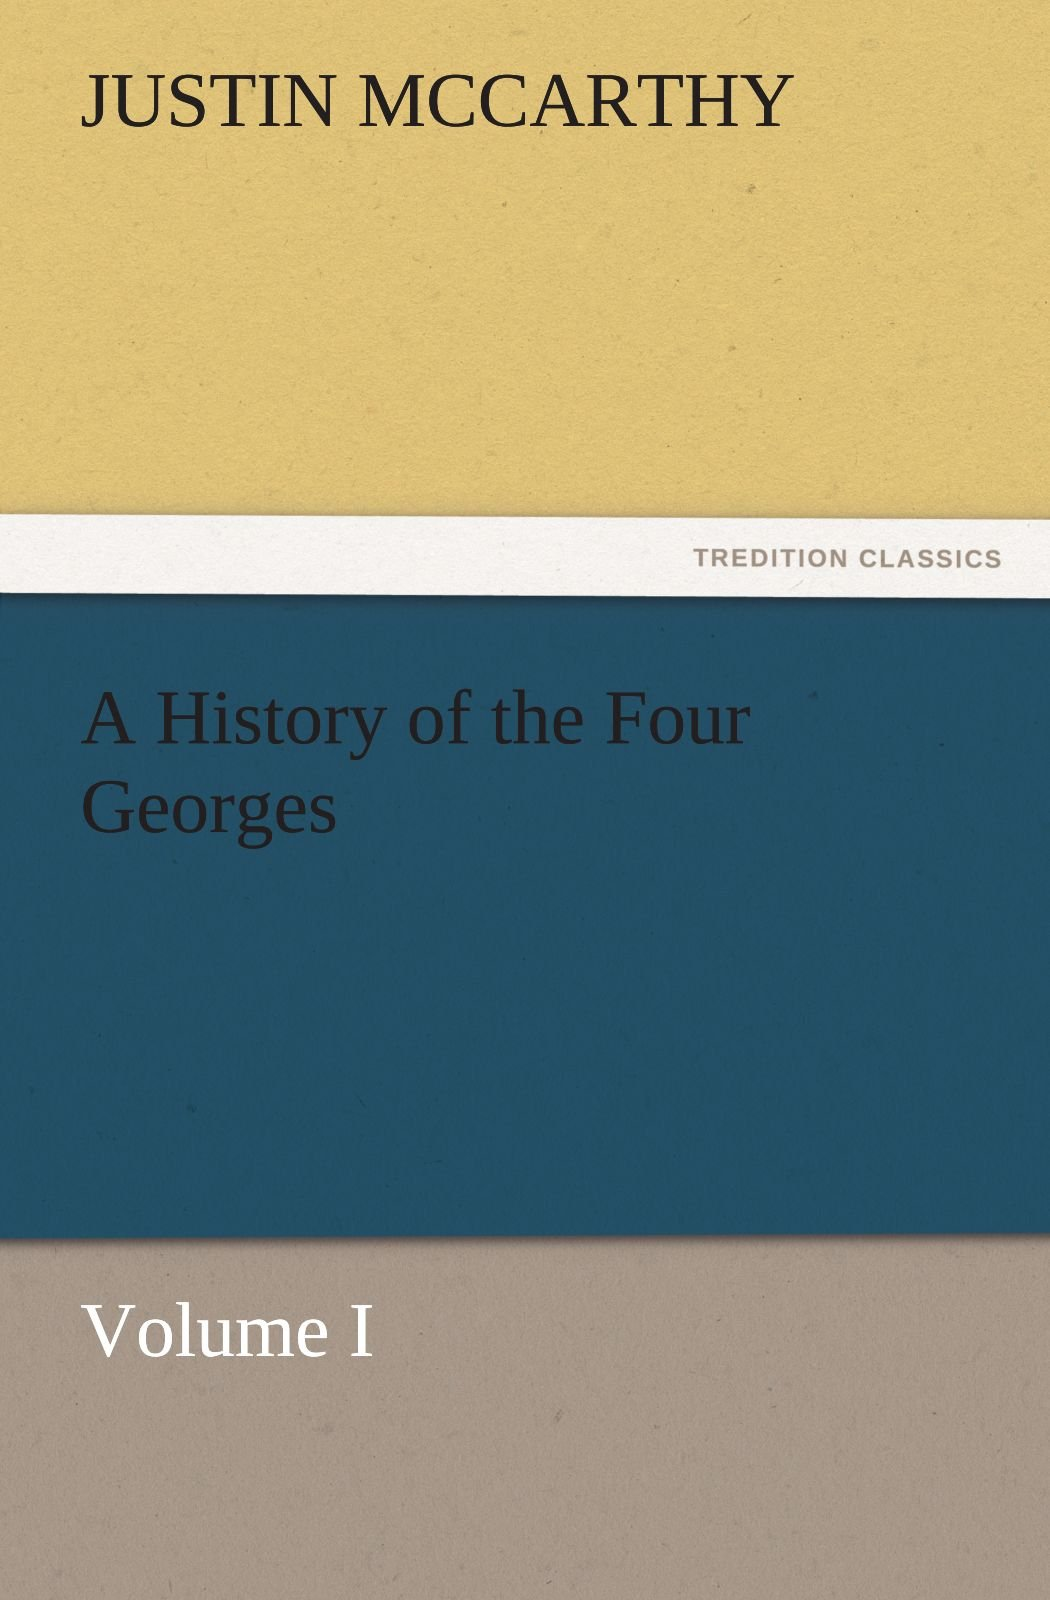 Download A History of the Four Georges, Volume I (TREDITION CLASSICS) pdf